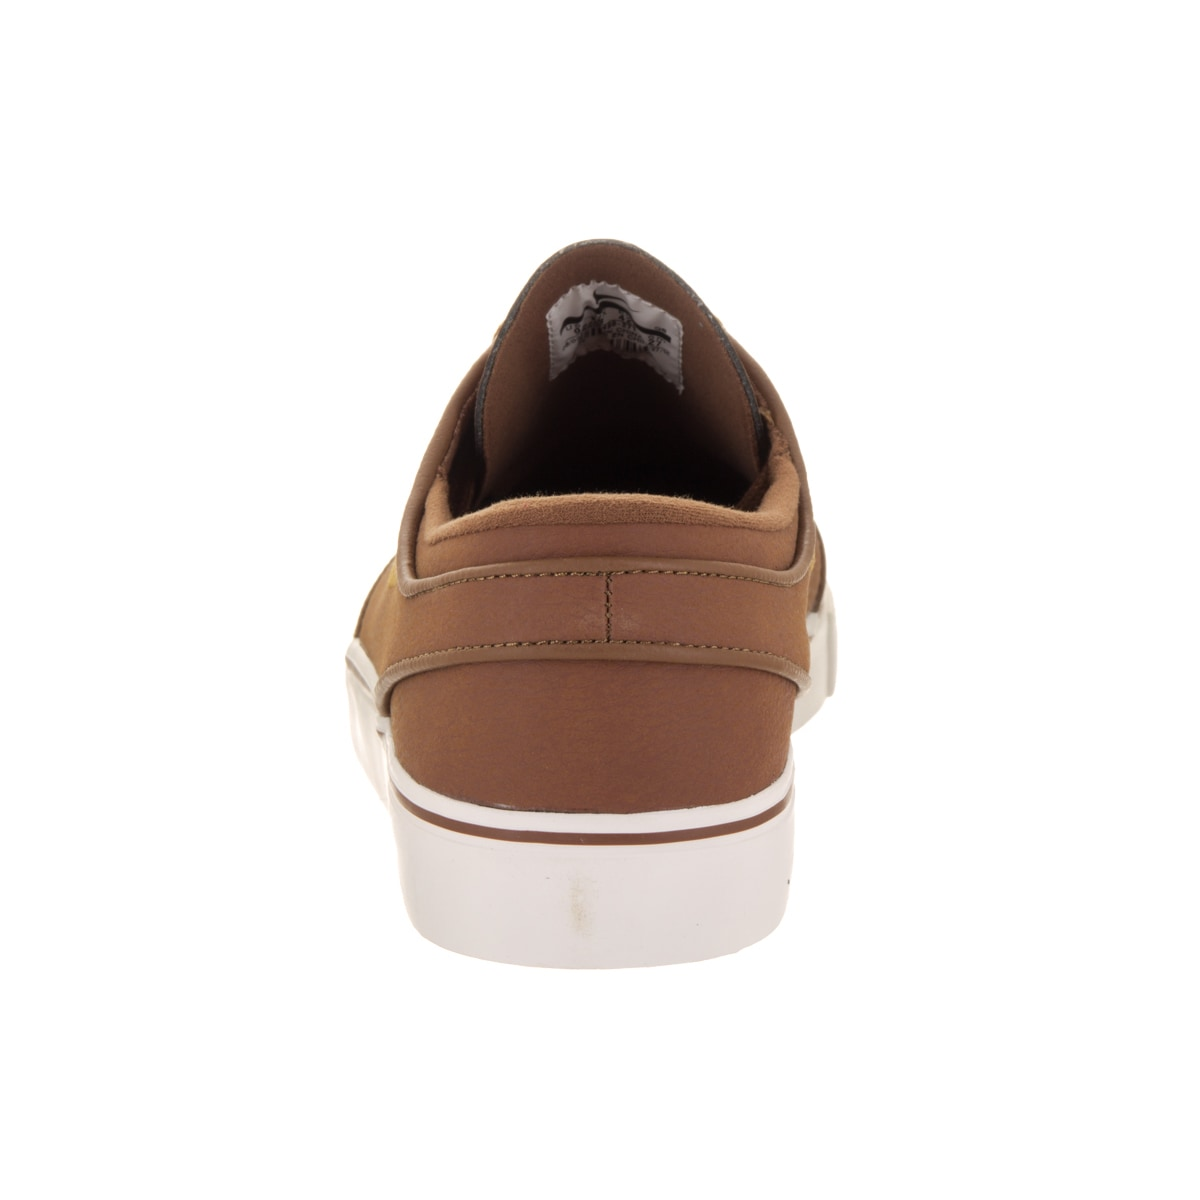 da83f8527c8 Shop Nike Men s Zoom Stefan Janoski L Brown Leather Skate Shoes - Free  Shipping Today - Overstock - 14084027